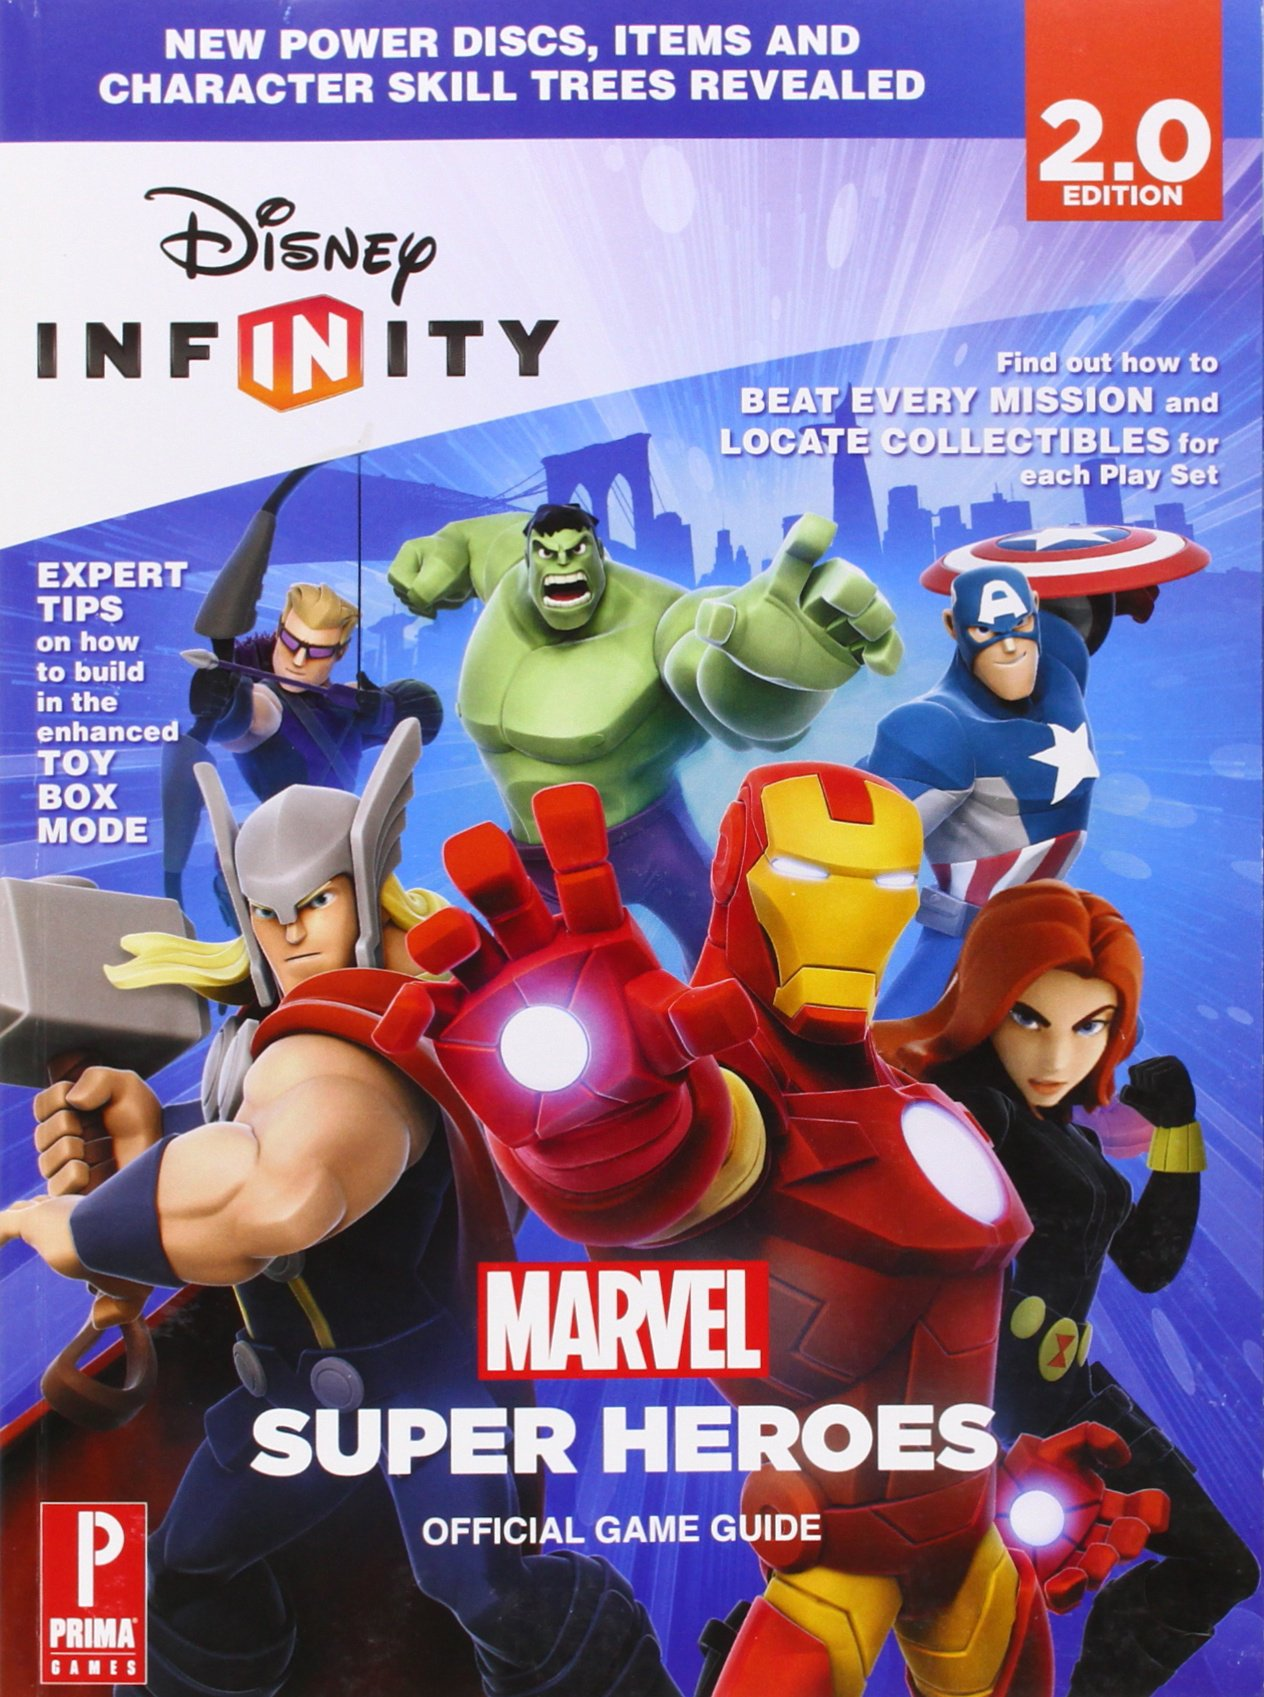 Disney Infinity Books